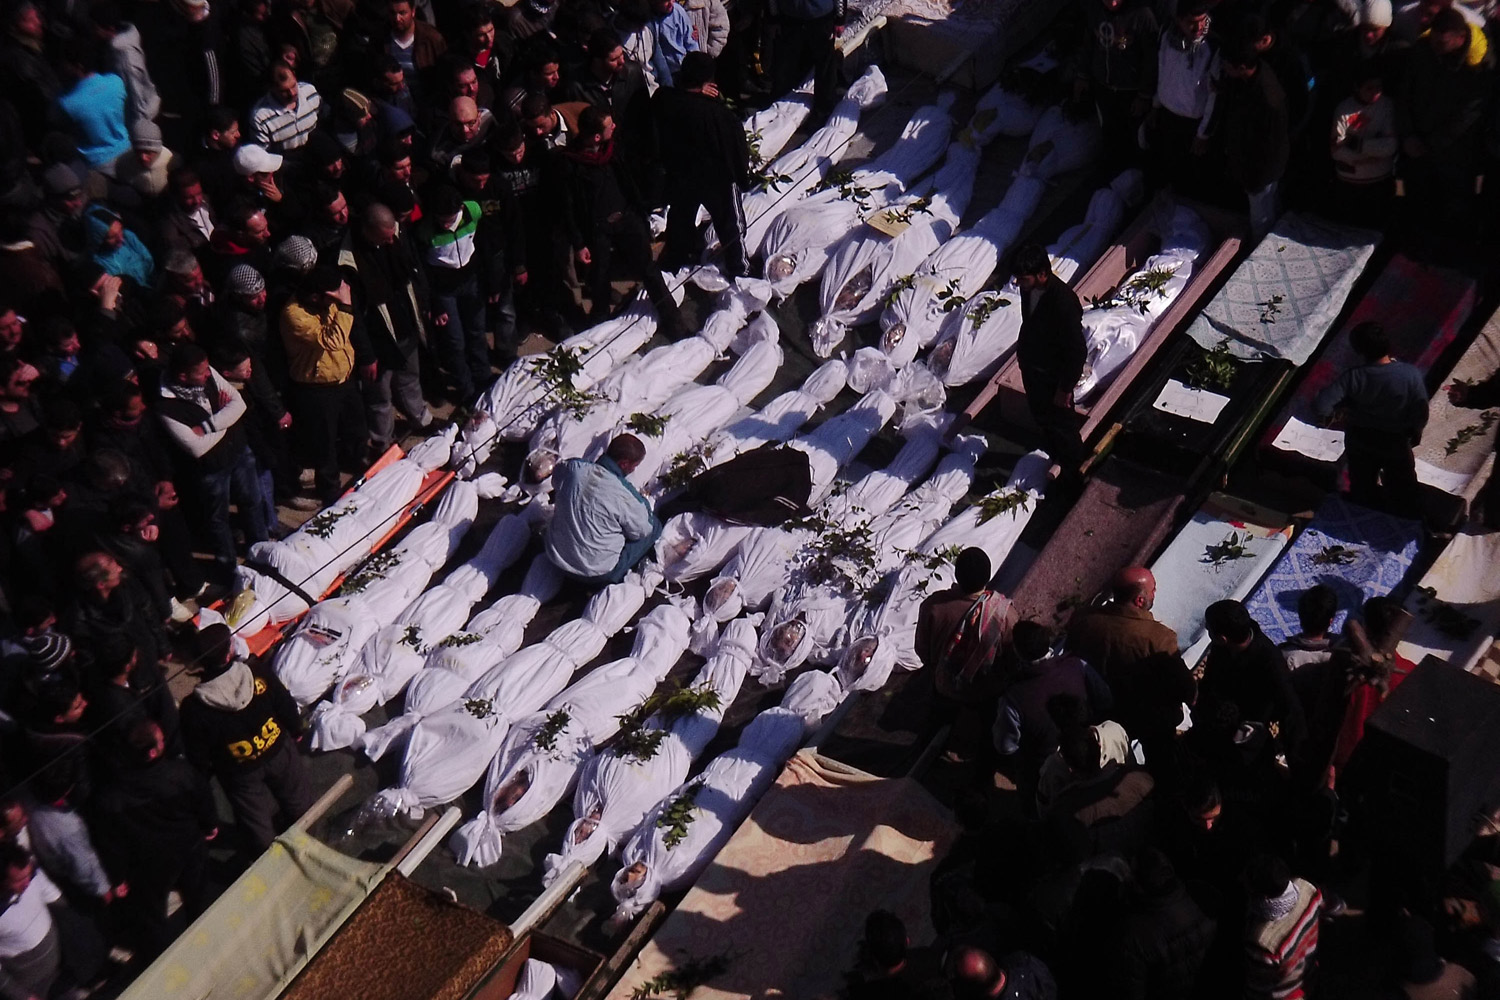 February 7, 2012. Syrian mourners gather around the bodies of people allegedly killed by Syrian government forces during a funeral procession in Maarat al-Noman, Idlib province, Syria.